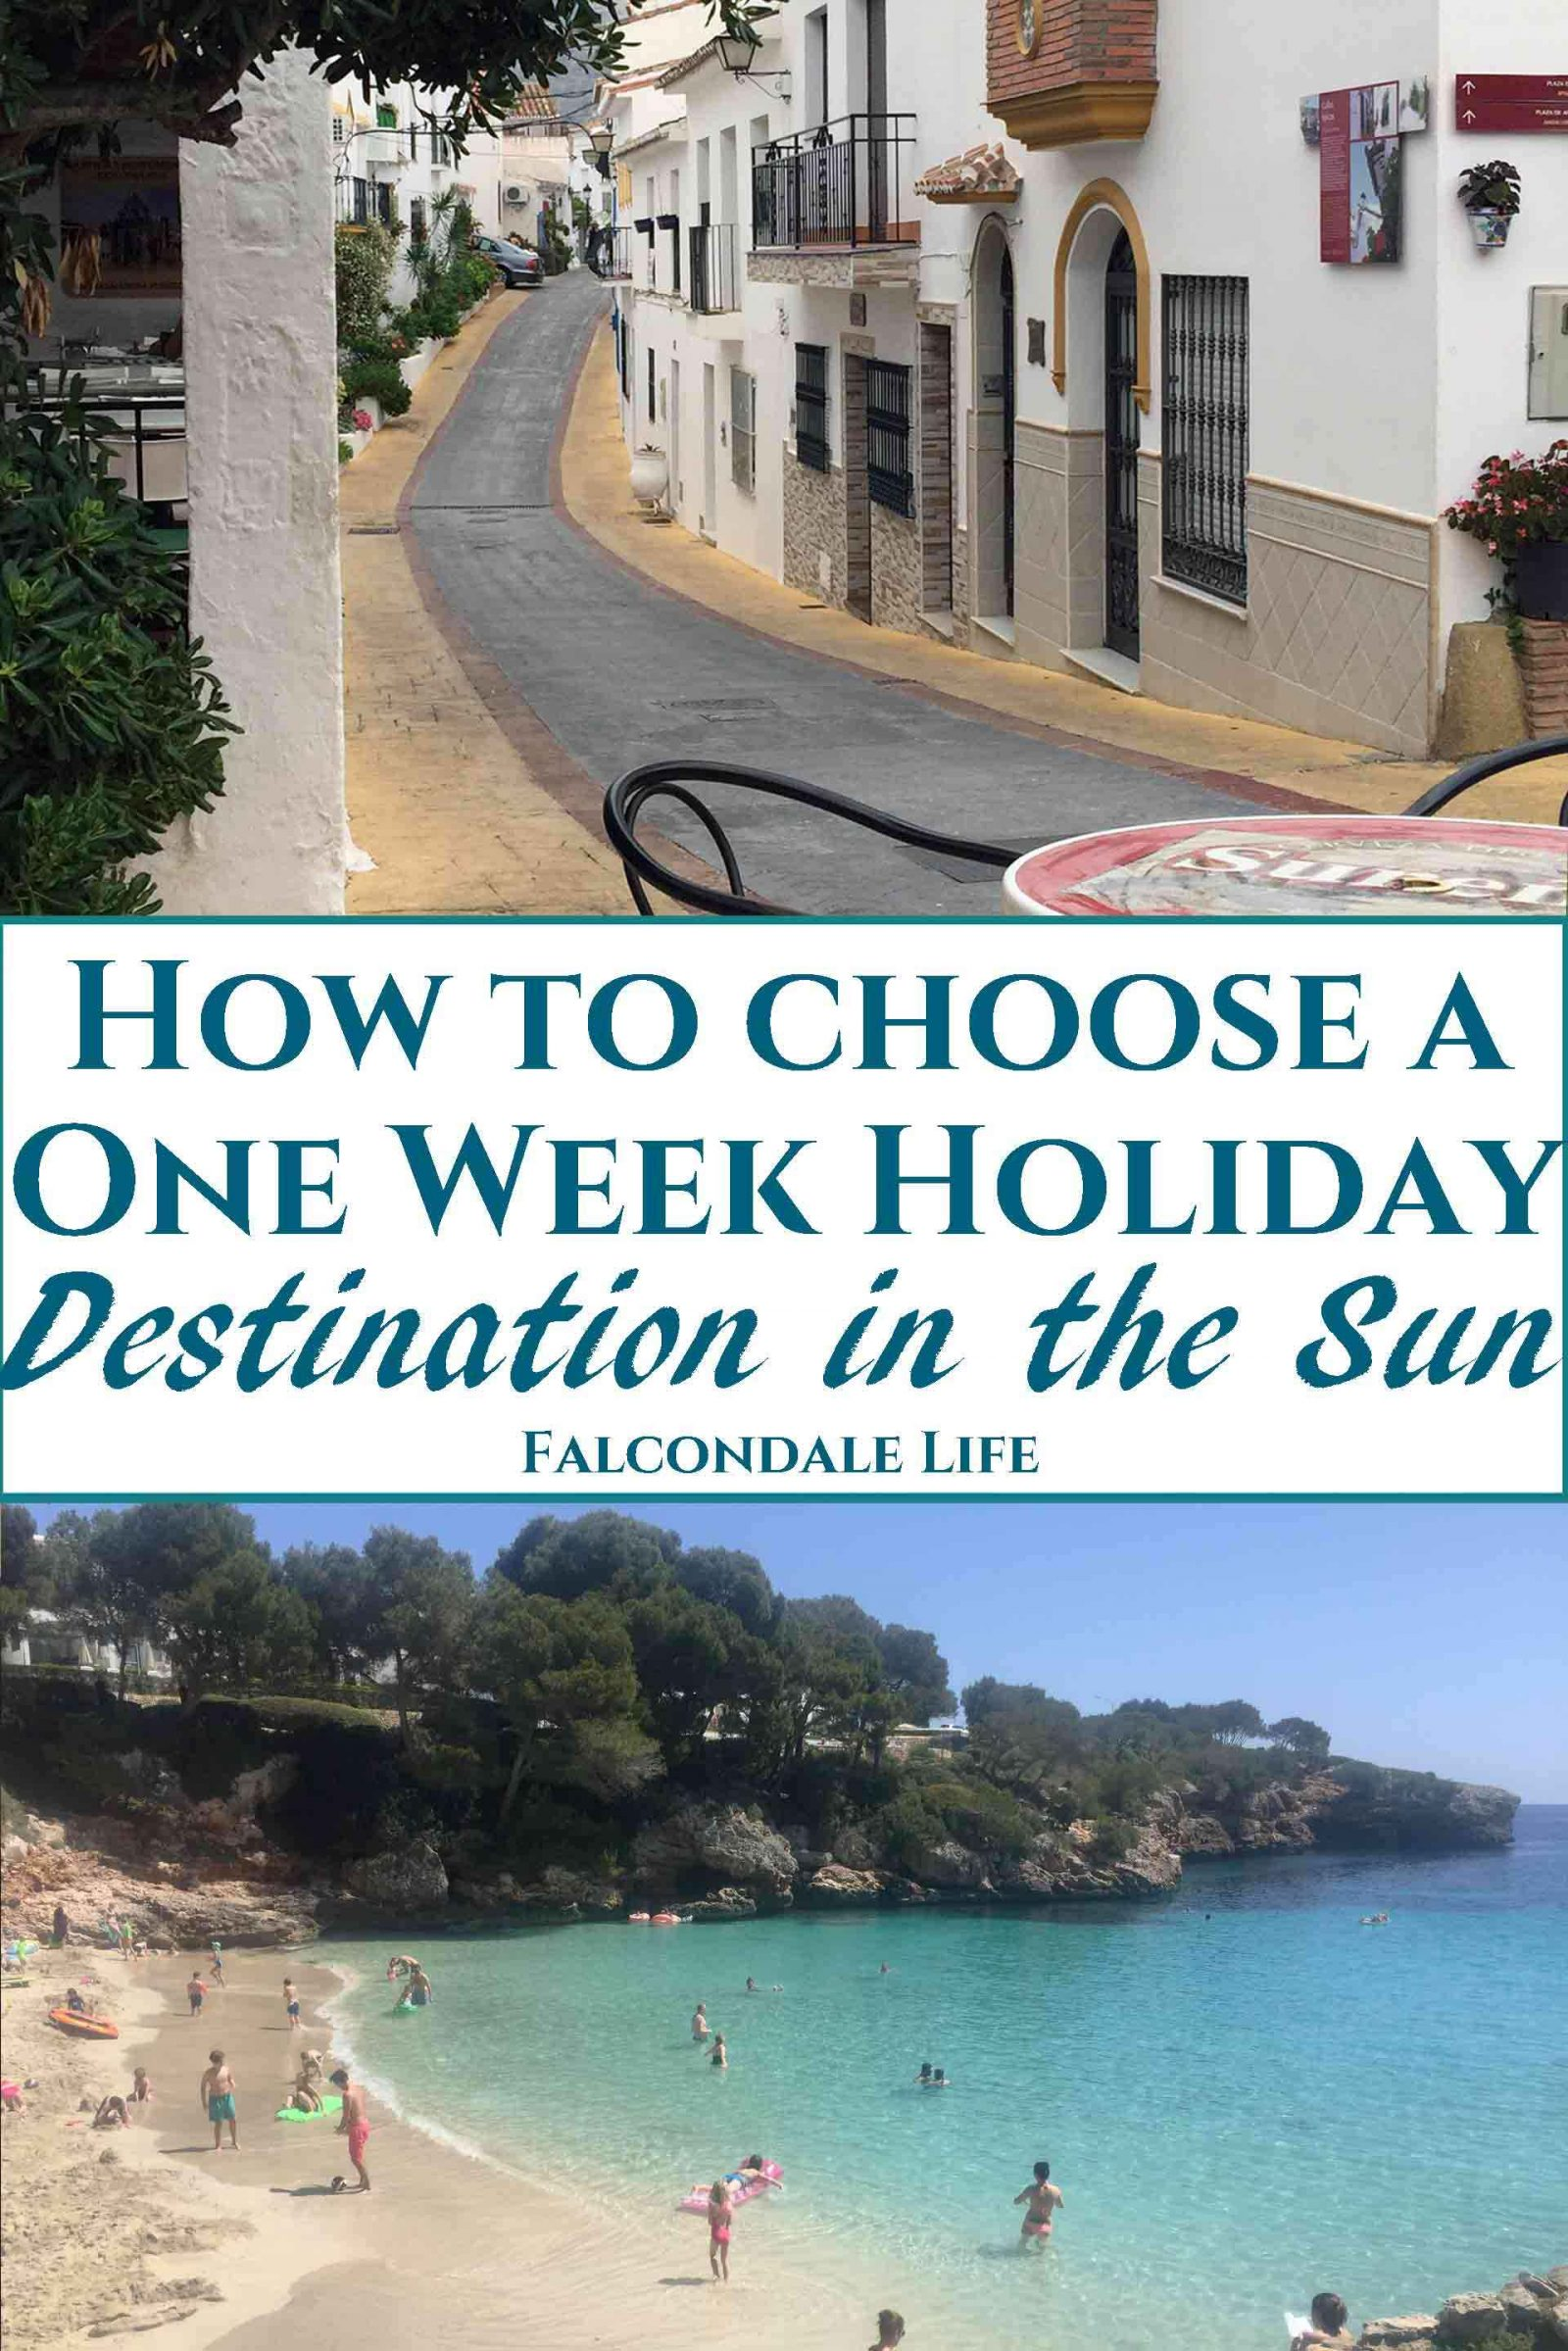 How to choose your destination for a one week holiday in the sun on Falcondale Life blog. If you've just got one week off work, how do you choose a holiday destination in the sun to get the most out of a relatively short break? Here are tops to help select your one week holiday destination flying from the UK, and don't miss out on the best vacation experiences. Image description: blog title banner with Spanish village and Majorca beach